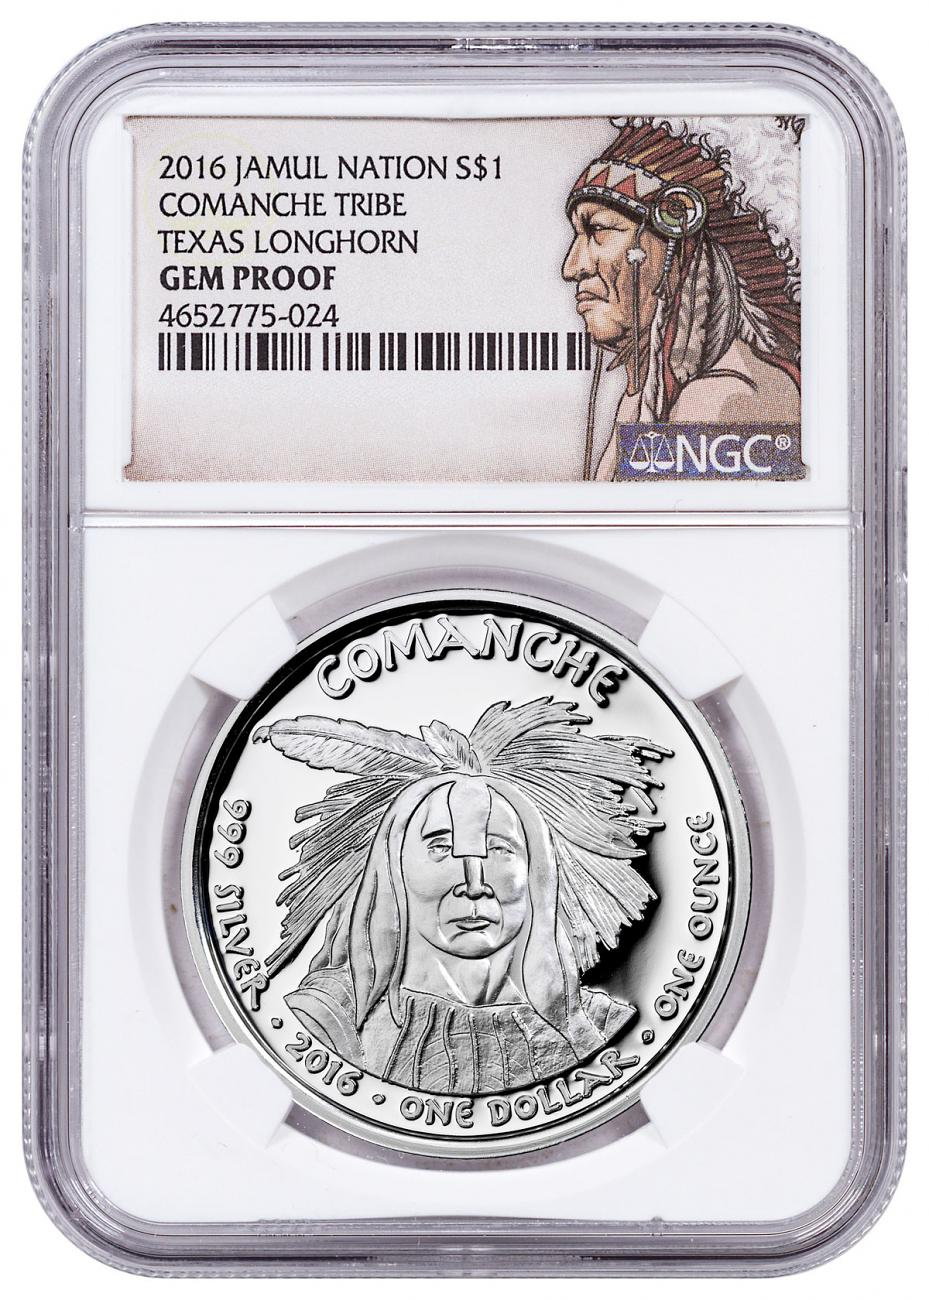 2016 Native American Silver Dollar - Texas Comanche - Longhorn 1 oz Silver Proof Coin NGC GEM Proof Native American Label